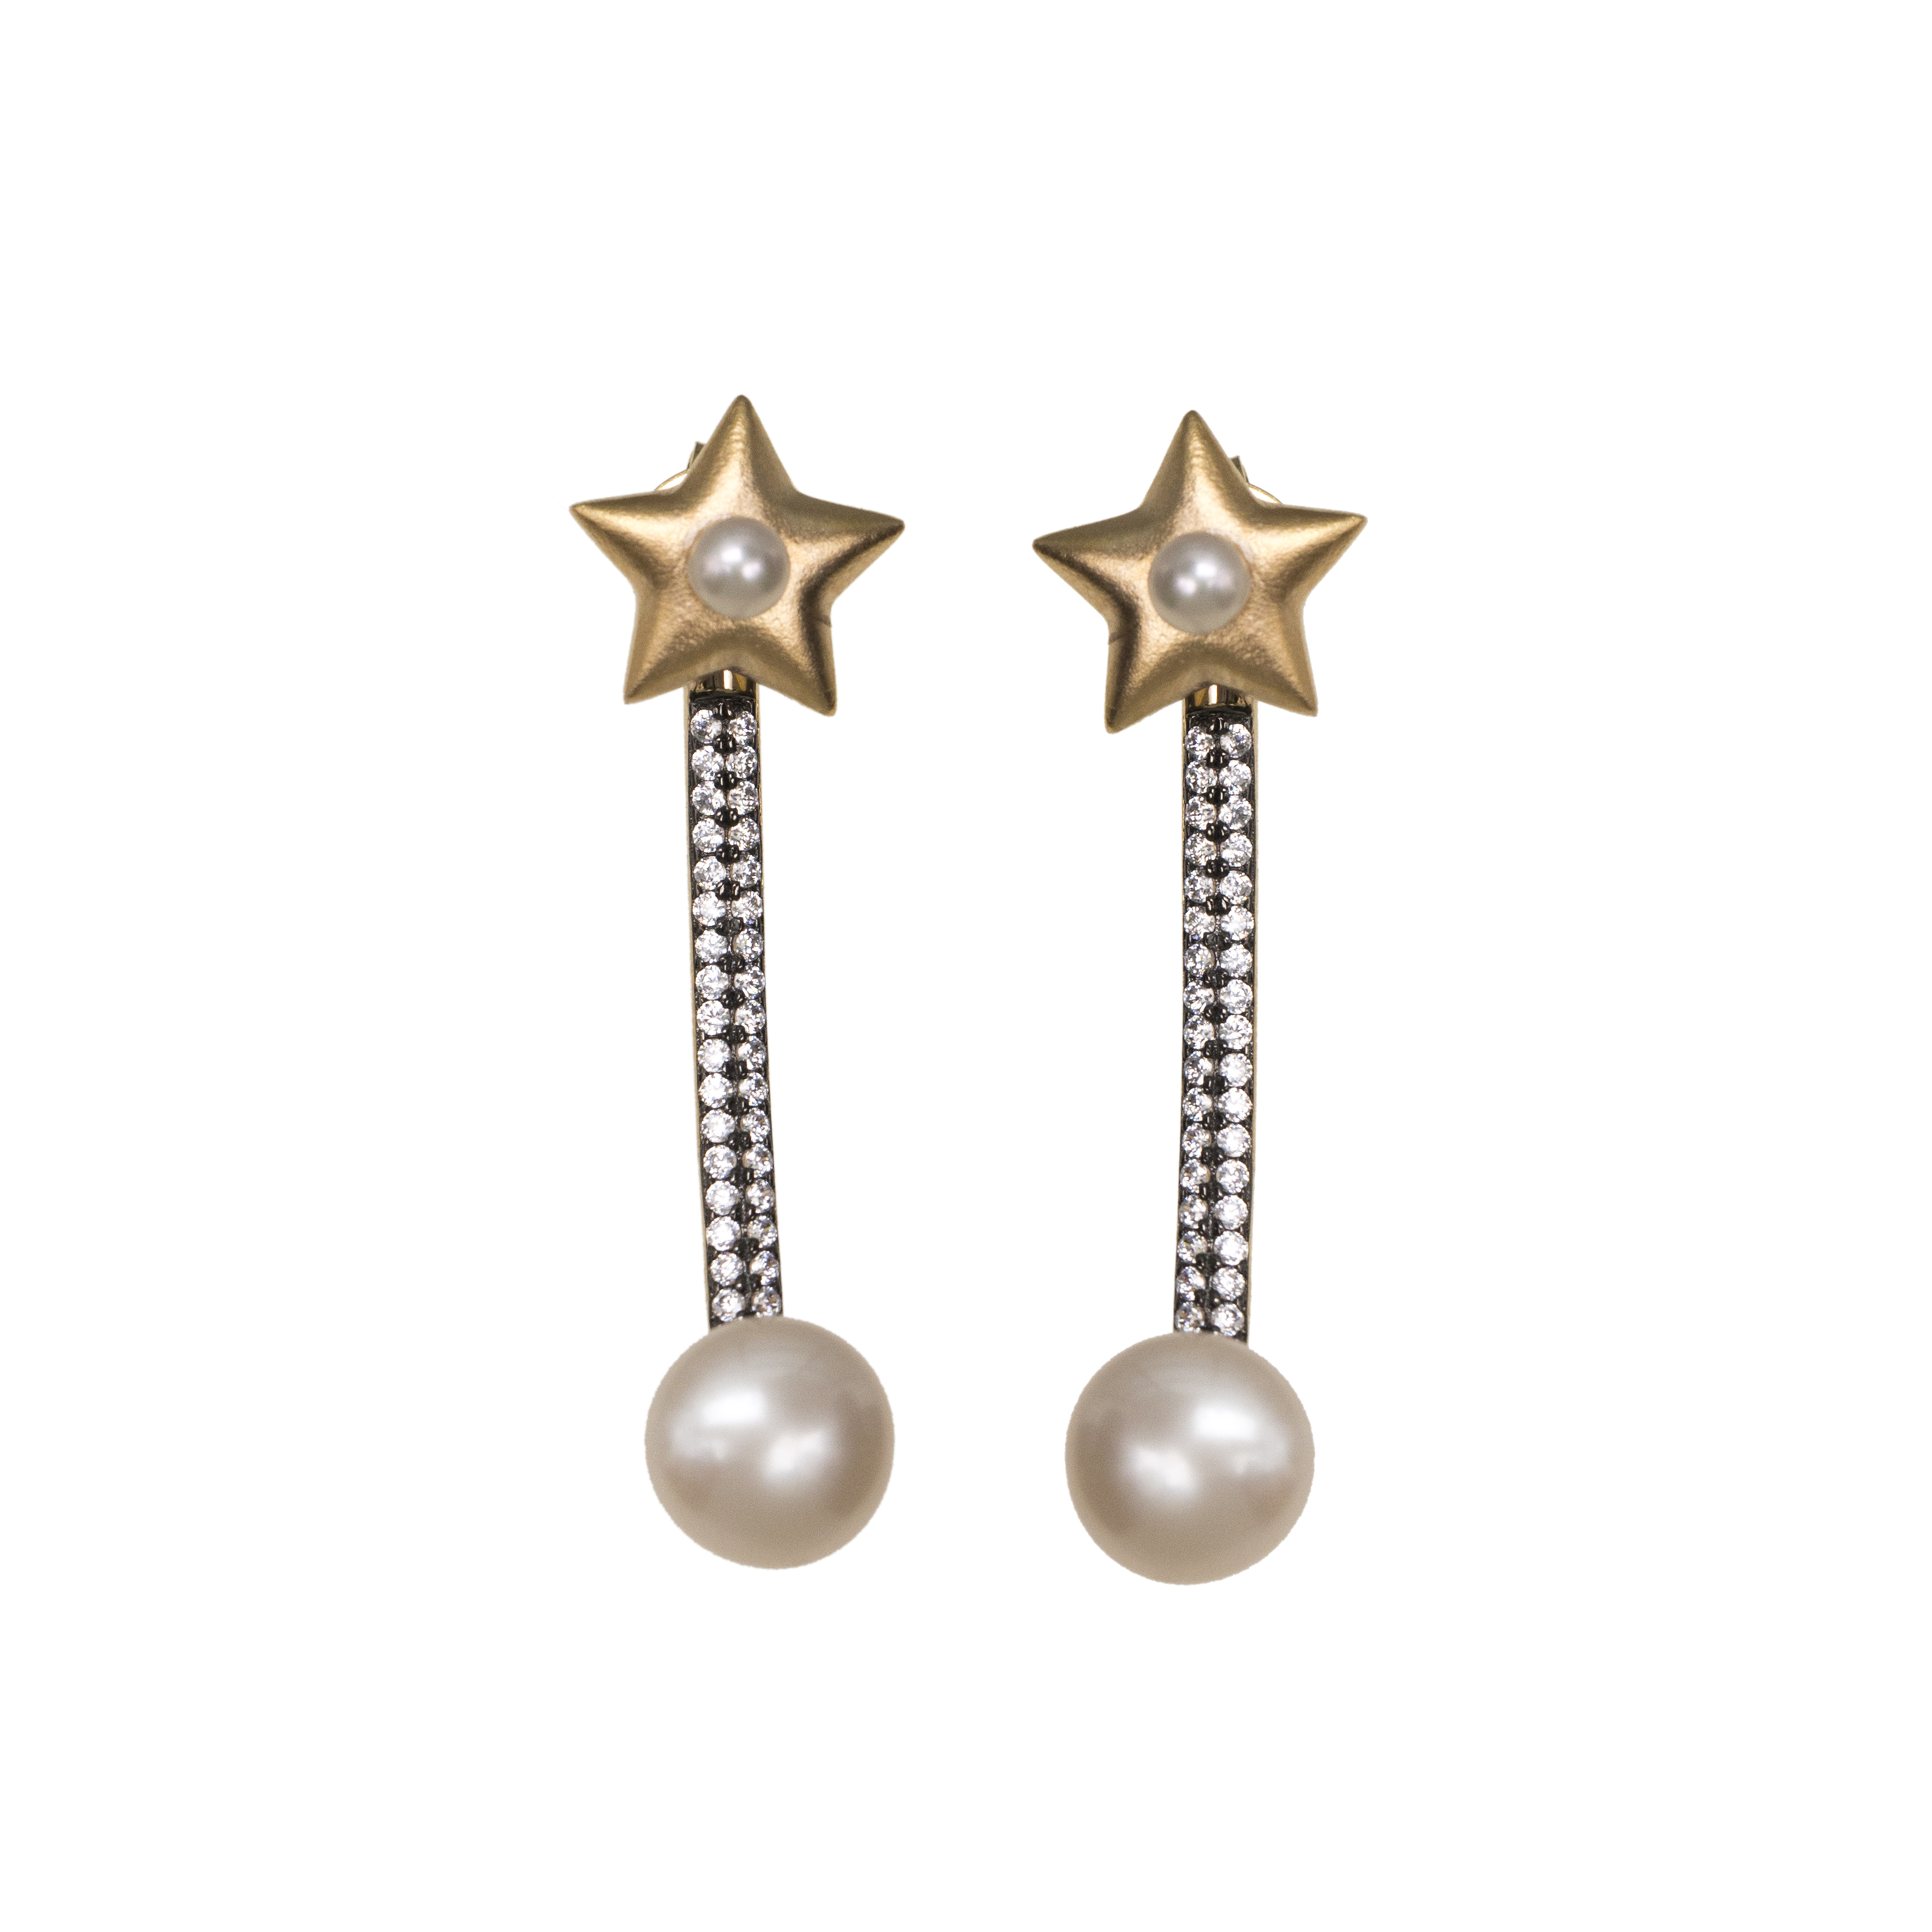 Star Jacket Earrings with Pearls and Zircon in Vermeil Gold by AMMANII on curated-crowd.com